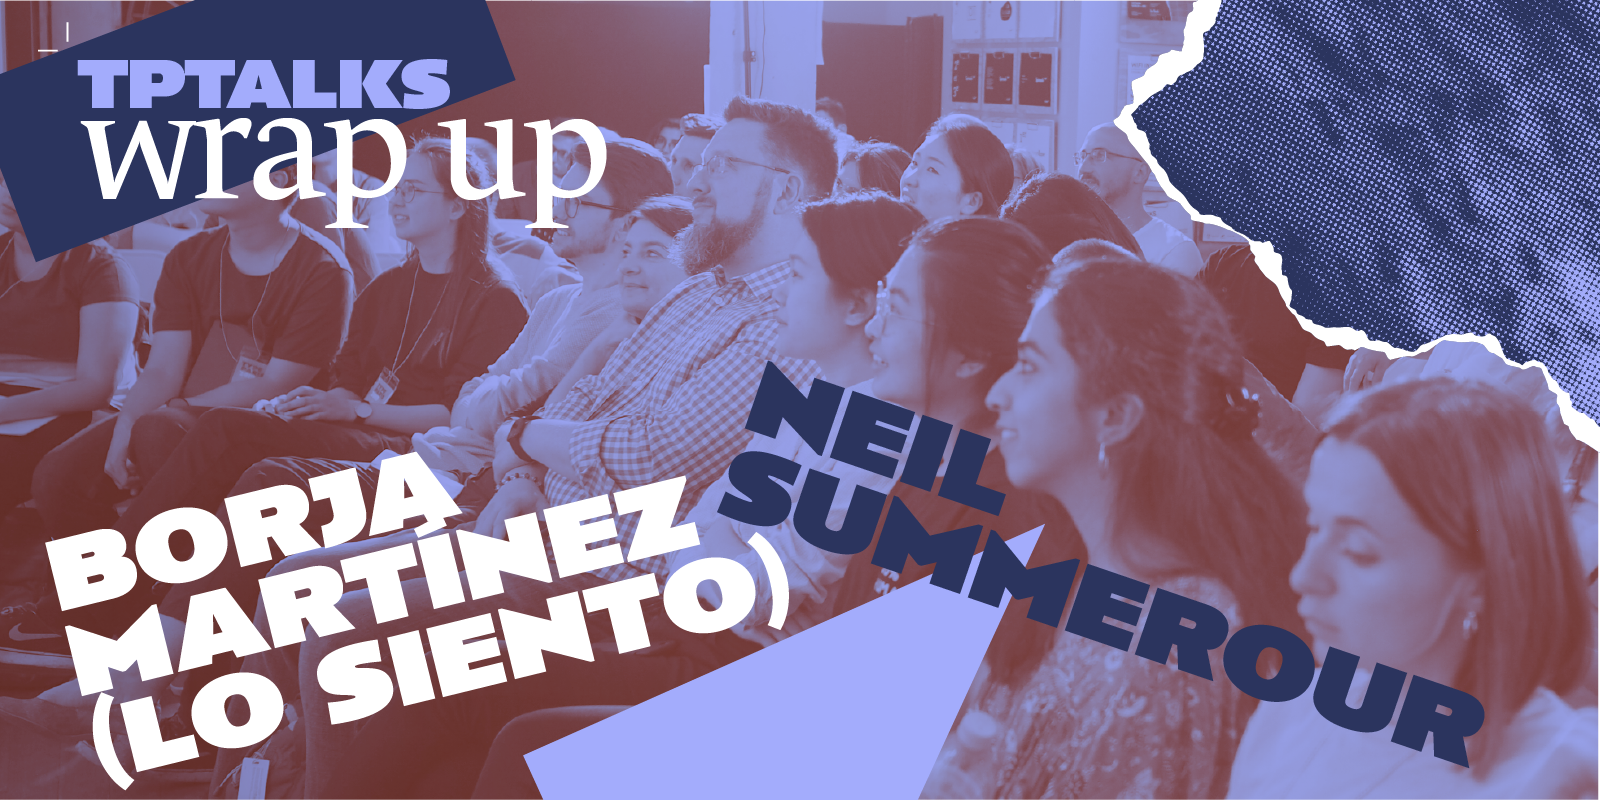 2019_typeparis19_tptalks02_2019_typeparis19_tptalks_summerour+losiento